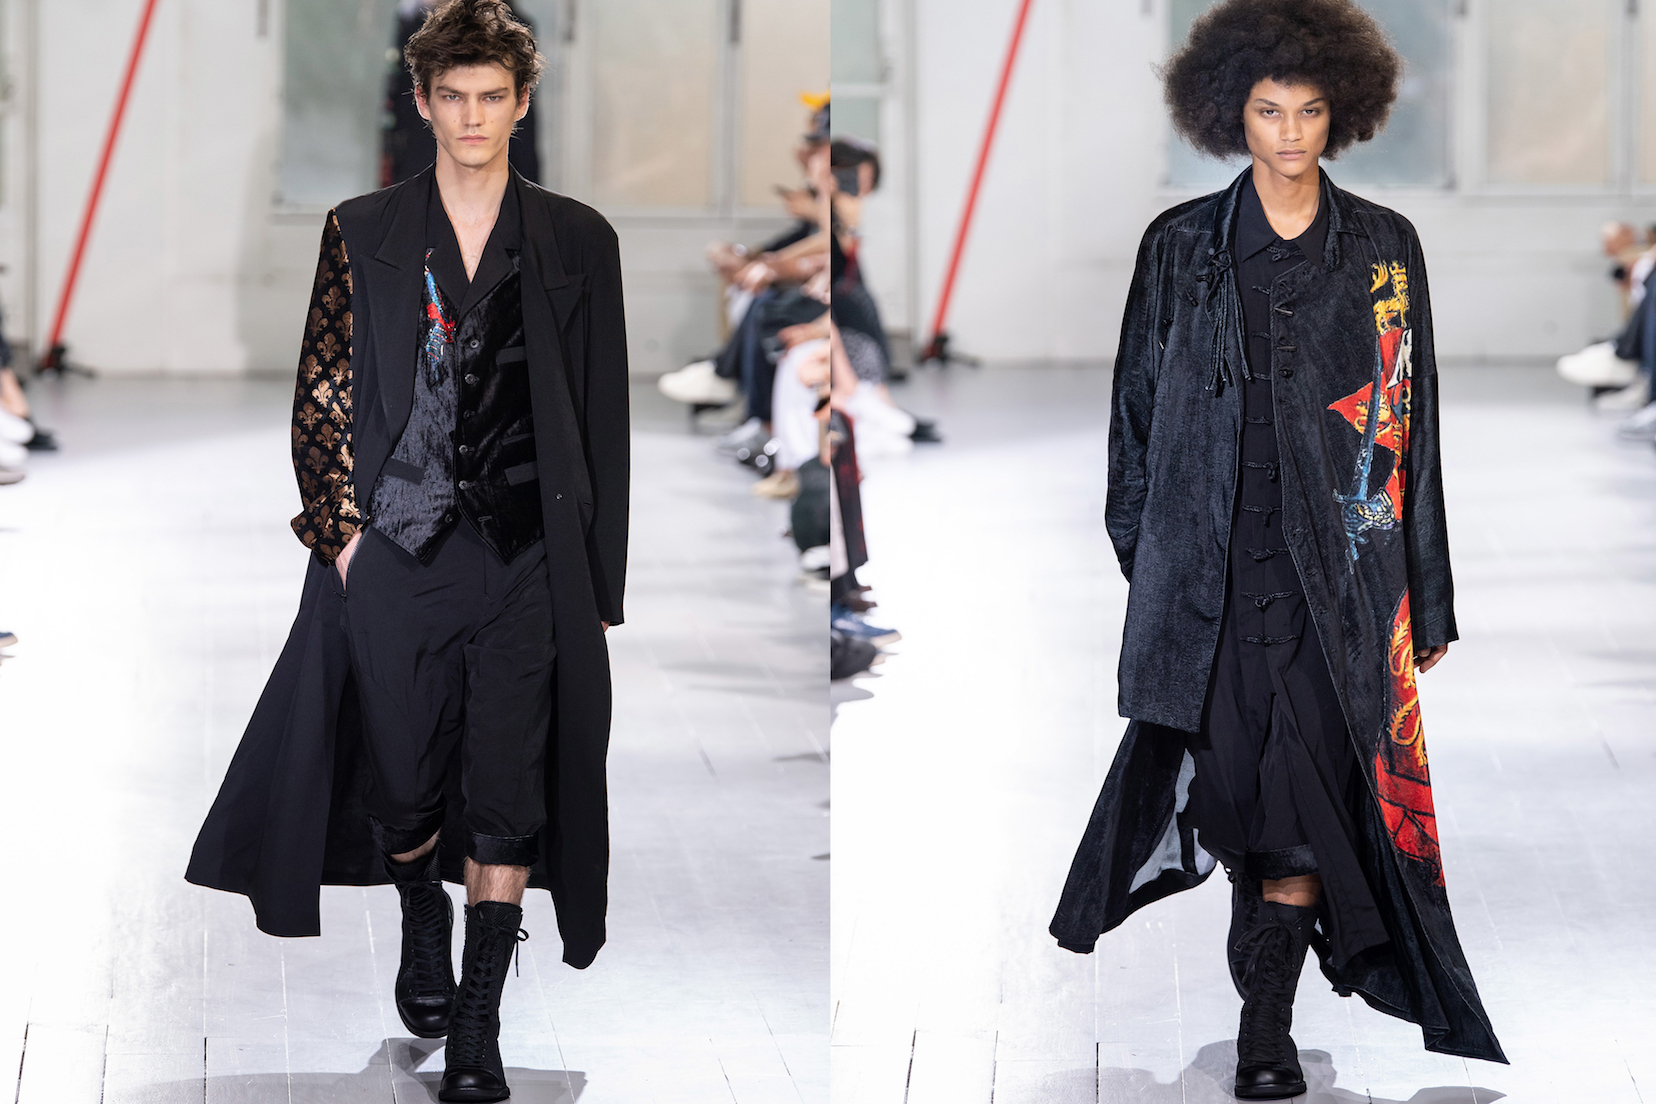 Runway looks from Yohji Yamamoto SS2020 menswear collection